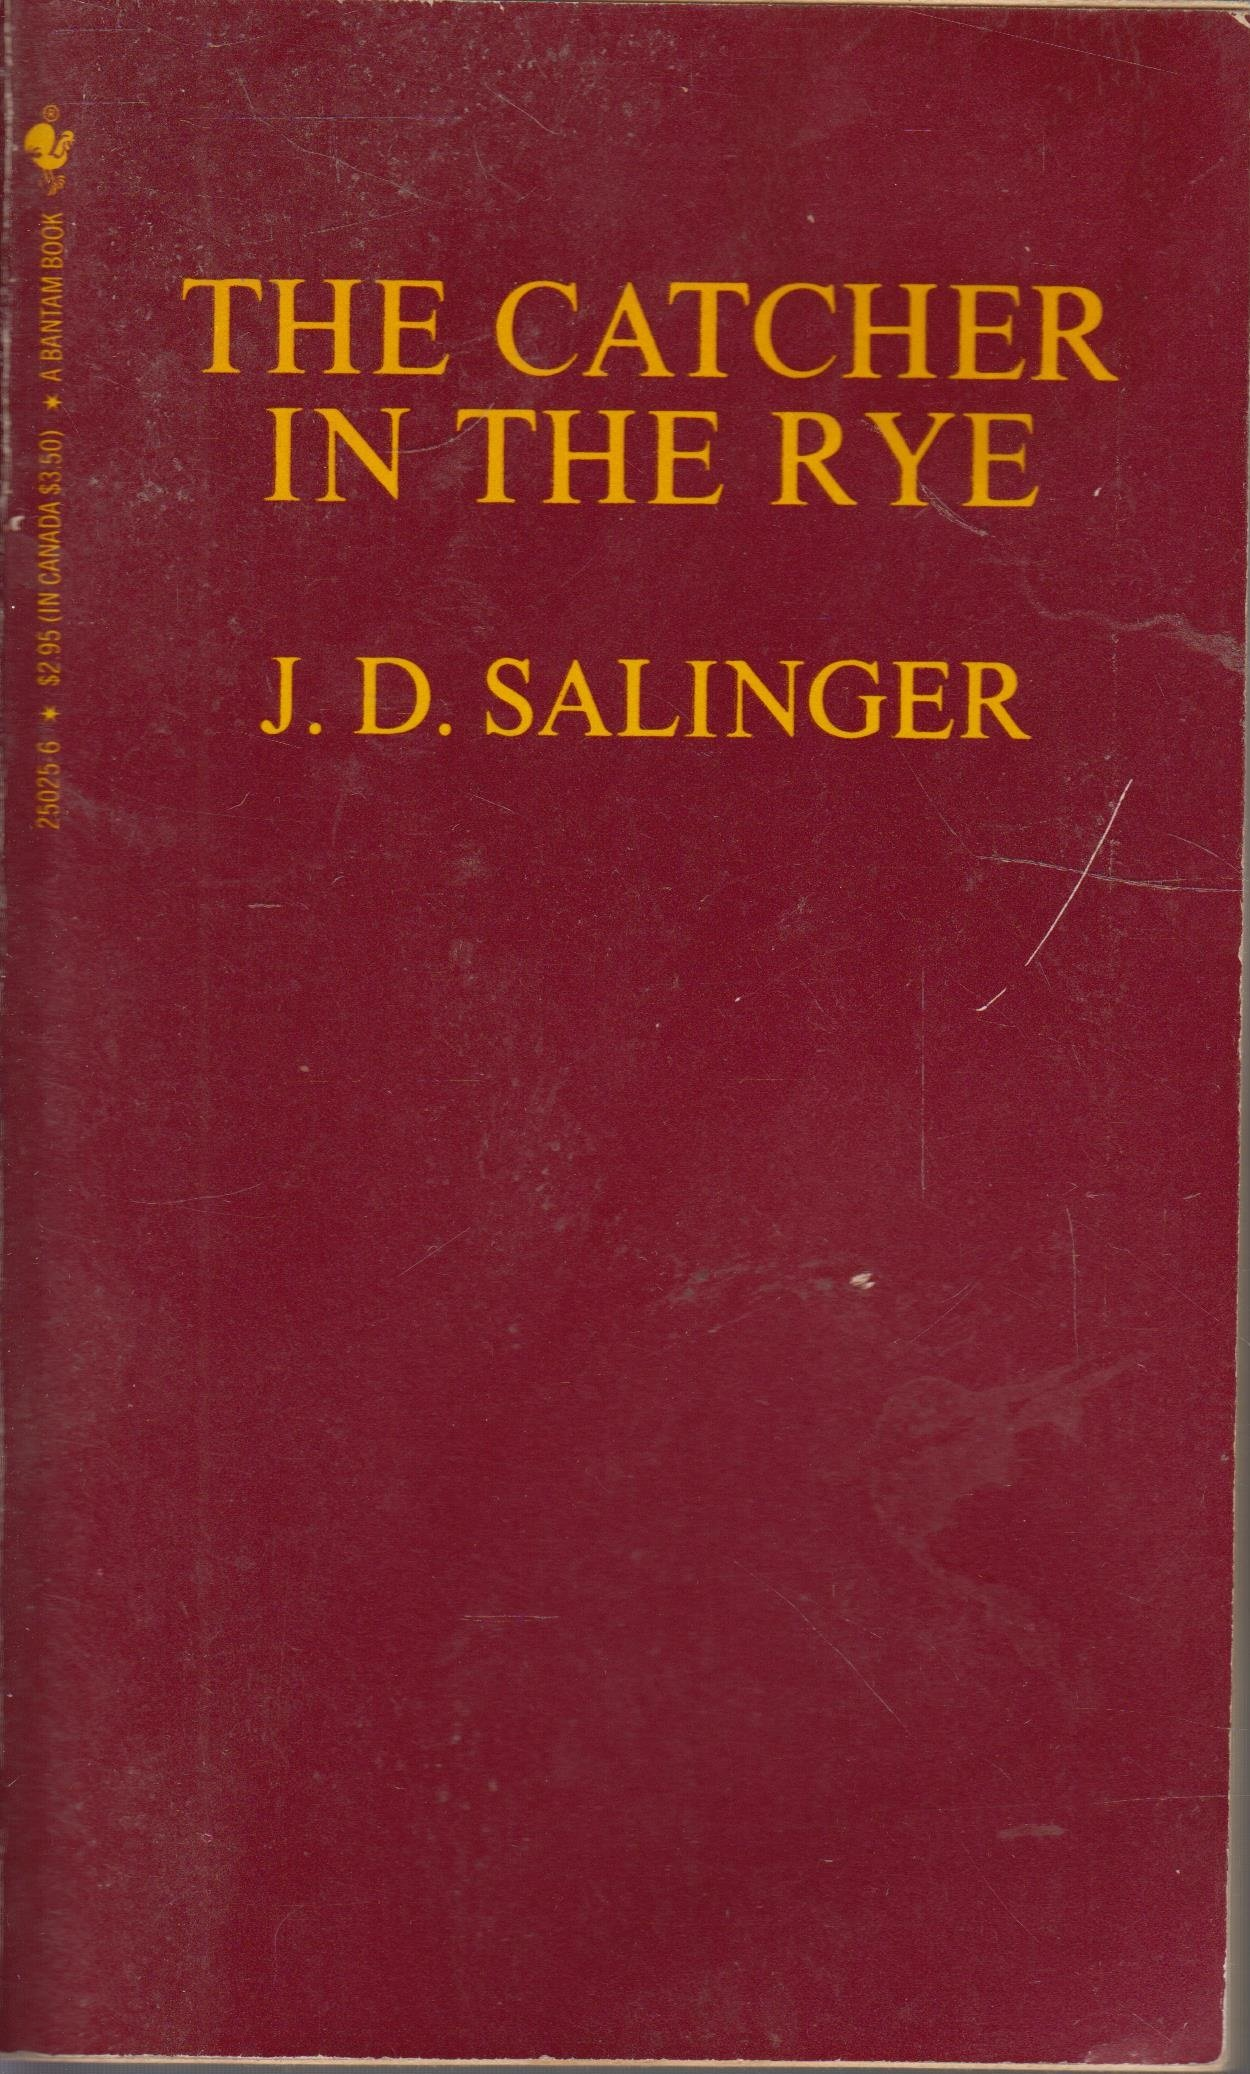 The Catcher in the Rye, Salinger, J.D.